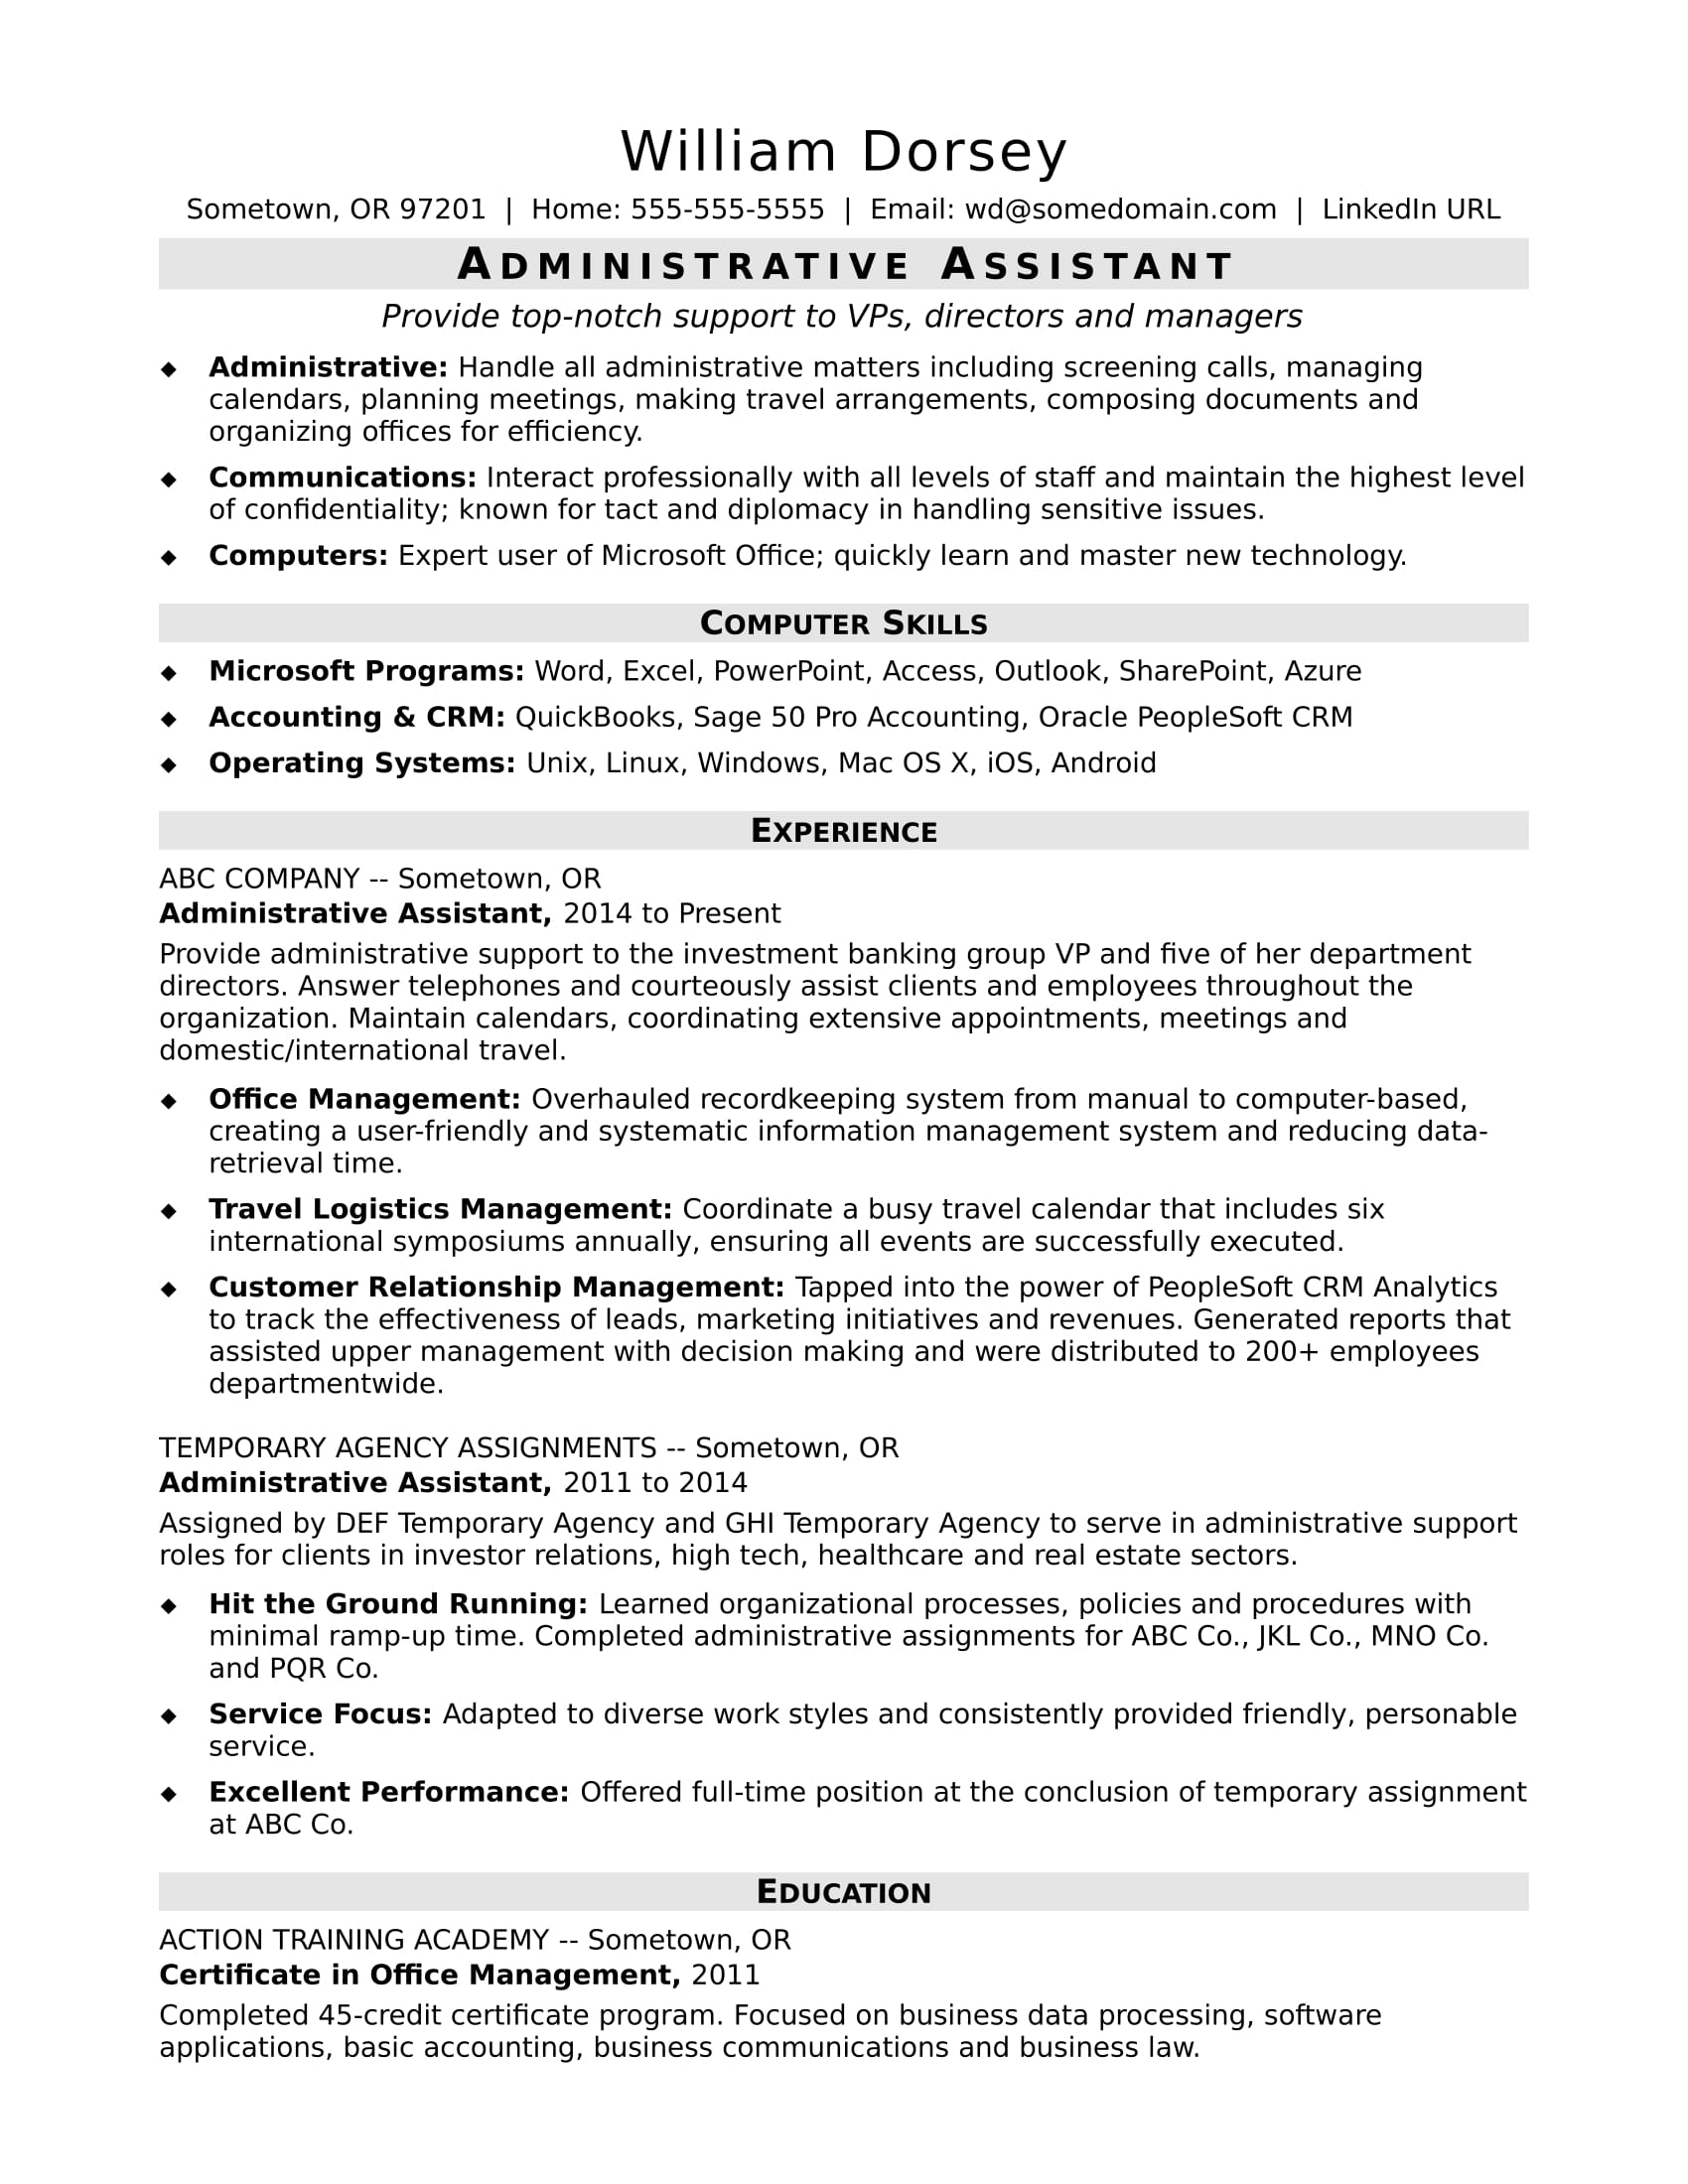 Sample Resume For A Midlevel Administrative Assistant  Business Skills For Resume